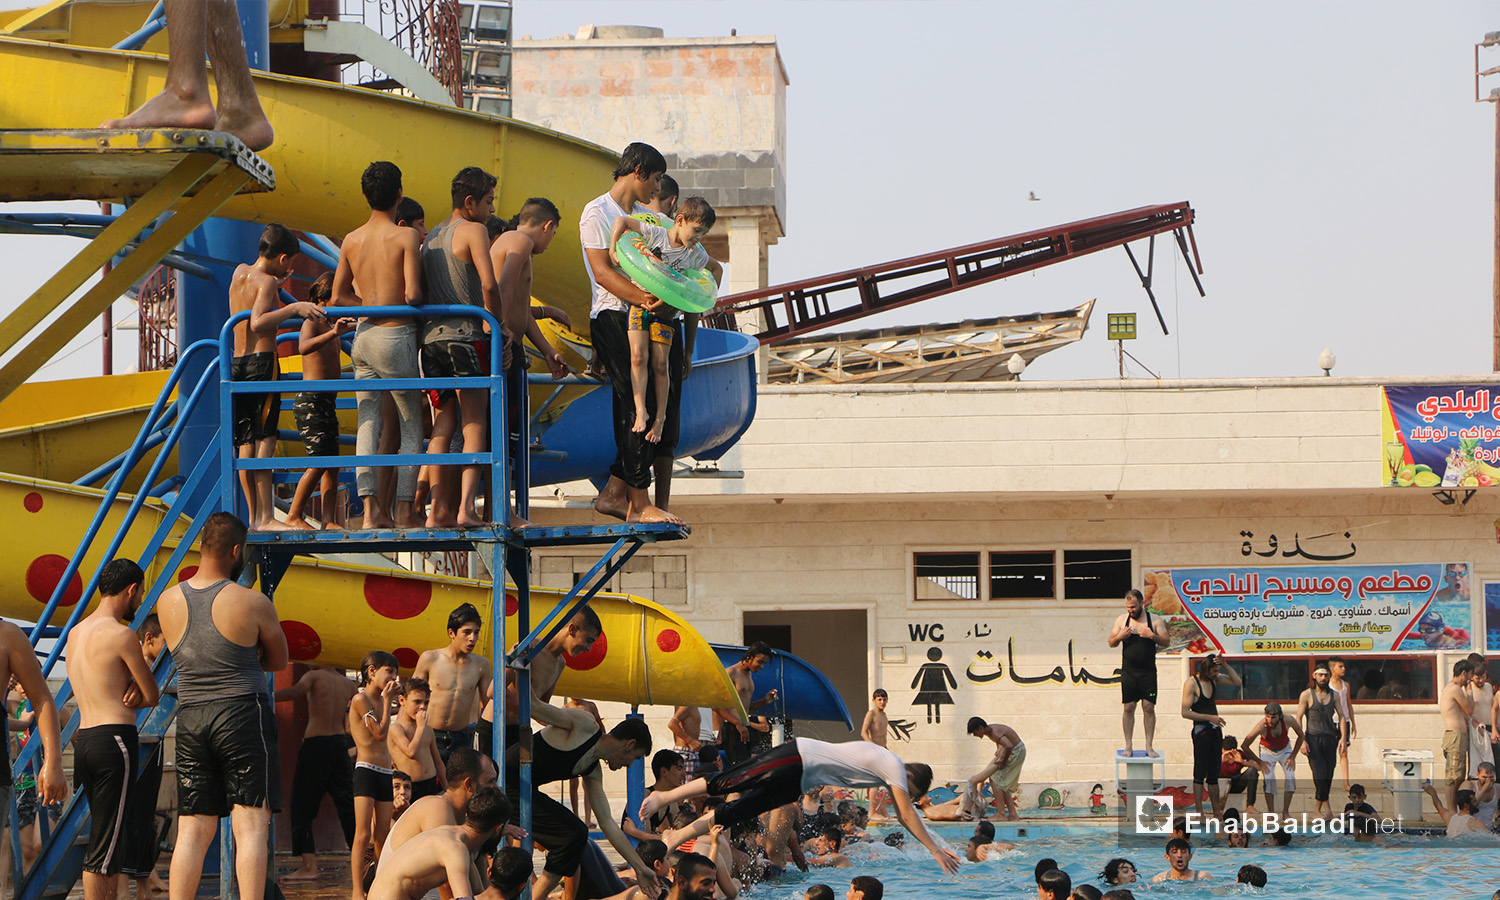 Crowds of children and young men who want to jump in Idlib's municipal swimming pool - September 2020 (Enab Baladi / Anas al-Khouli)